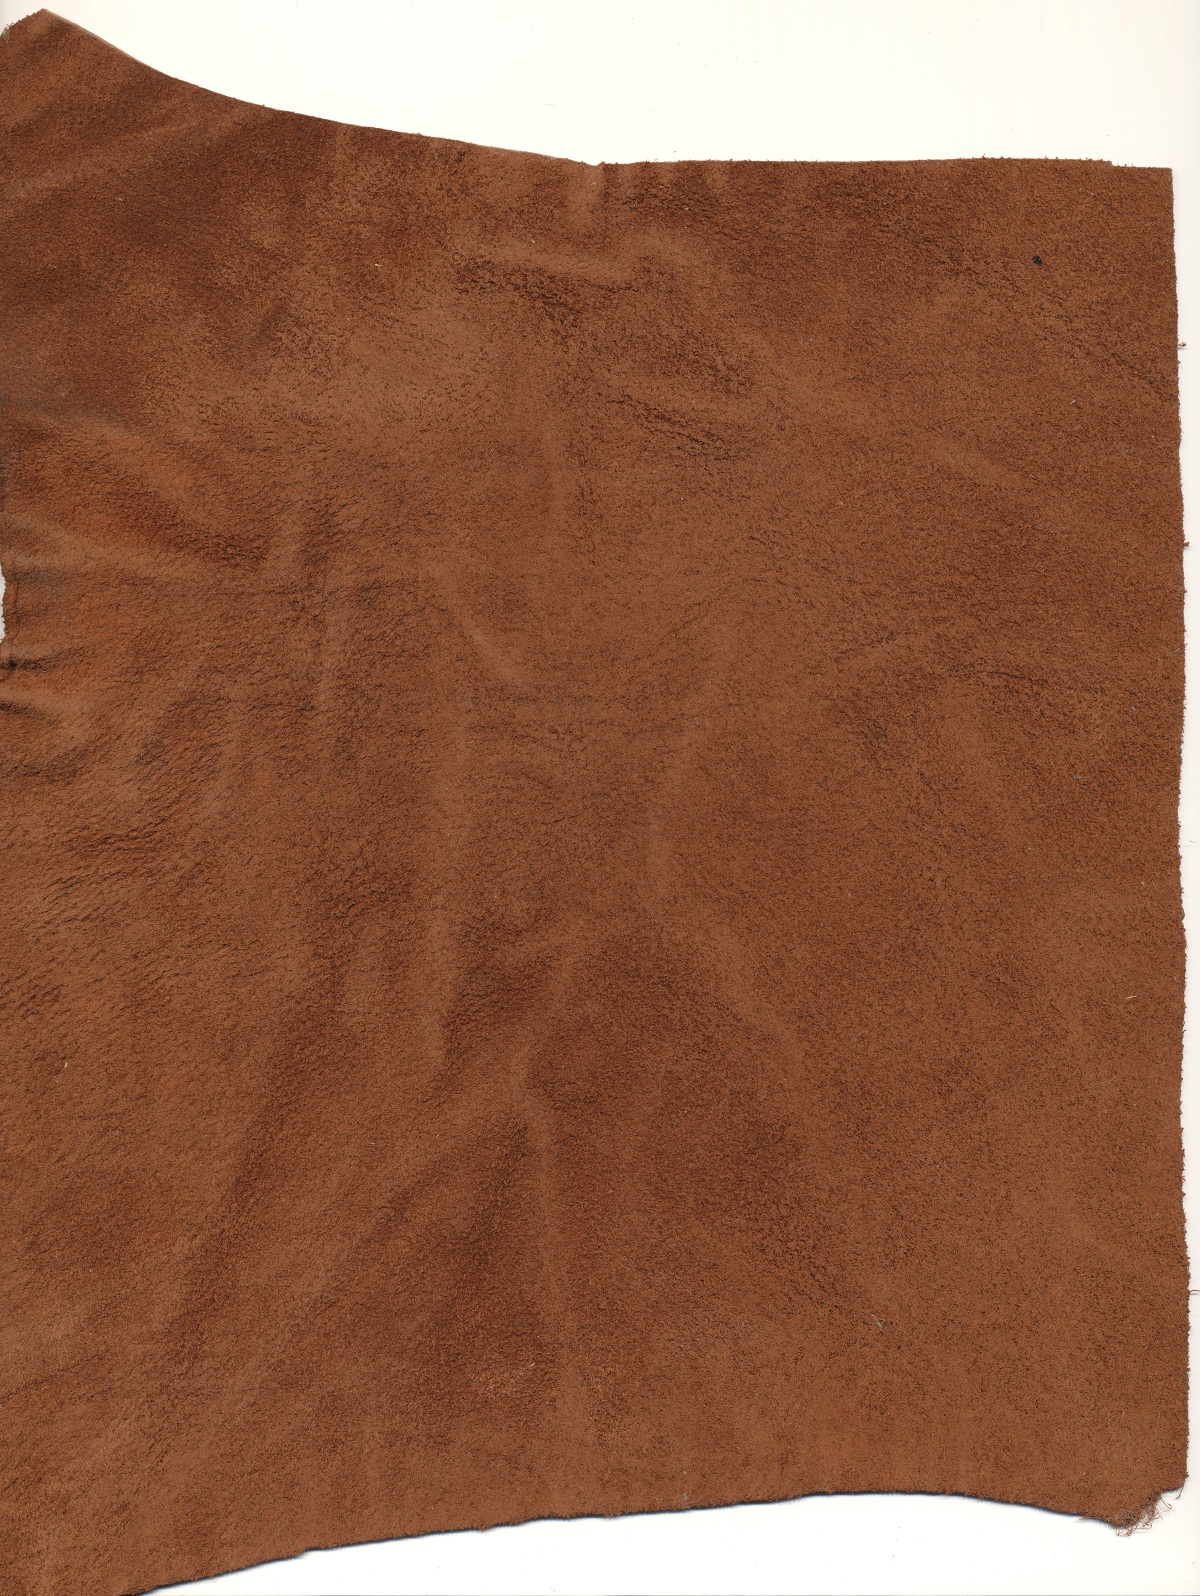 fzm-leather-texture-18